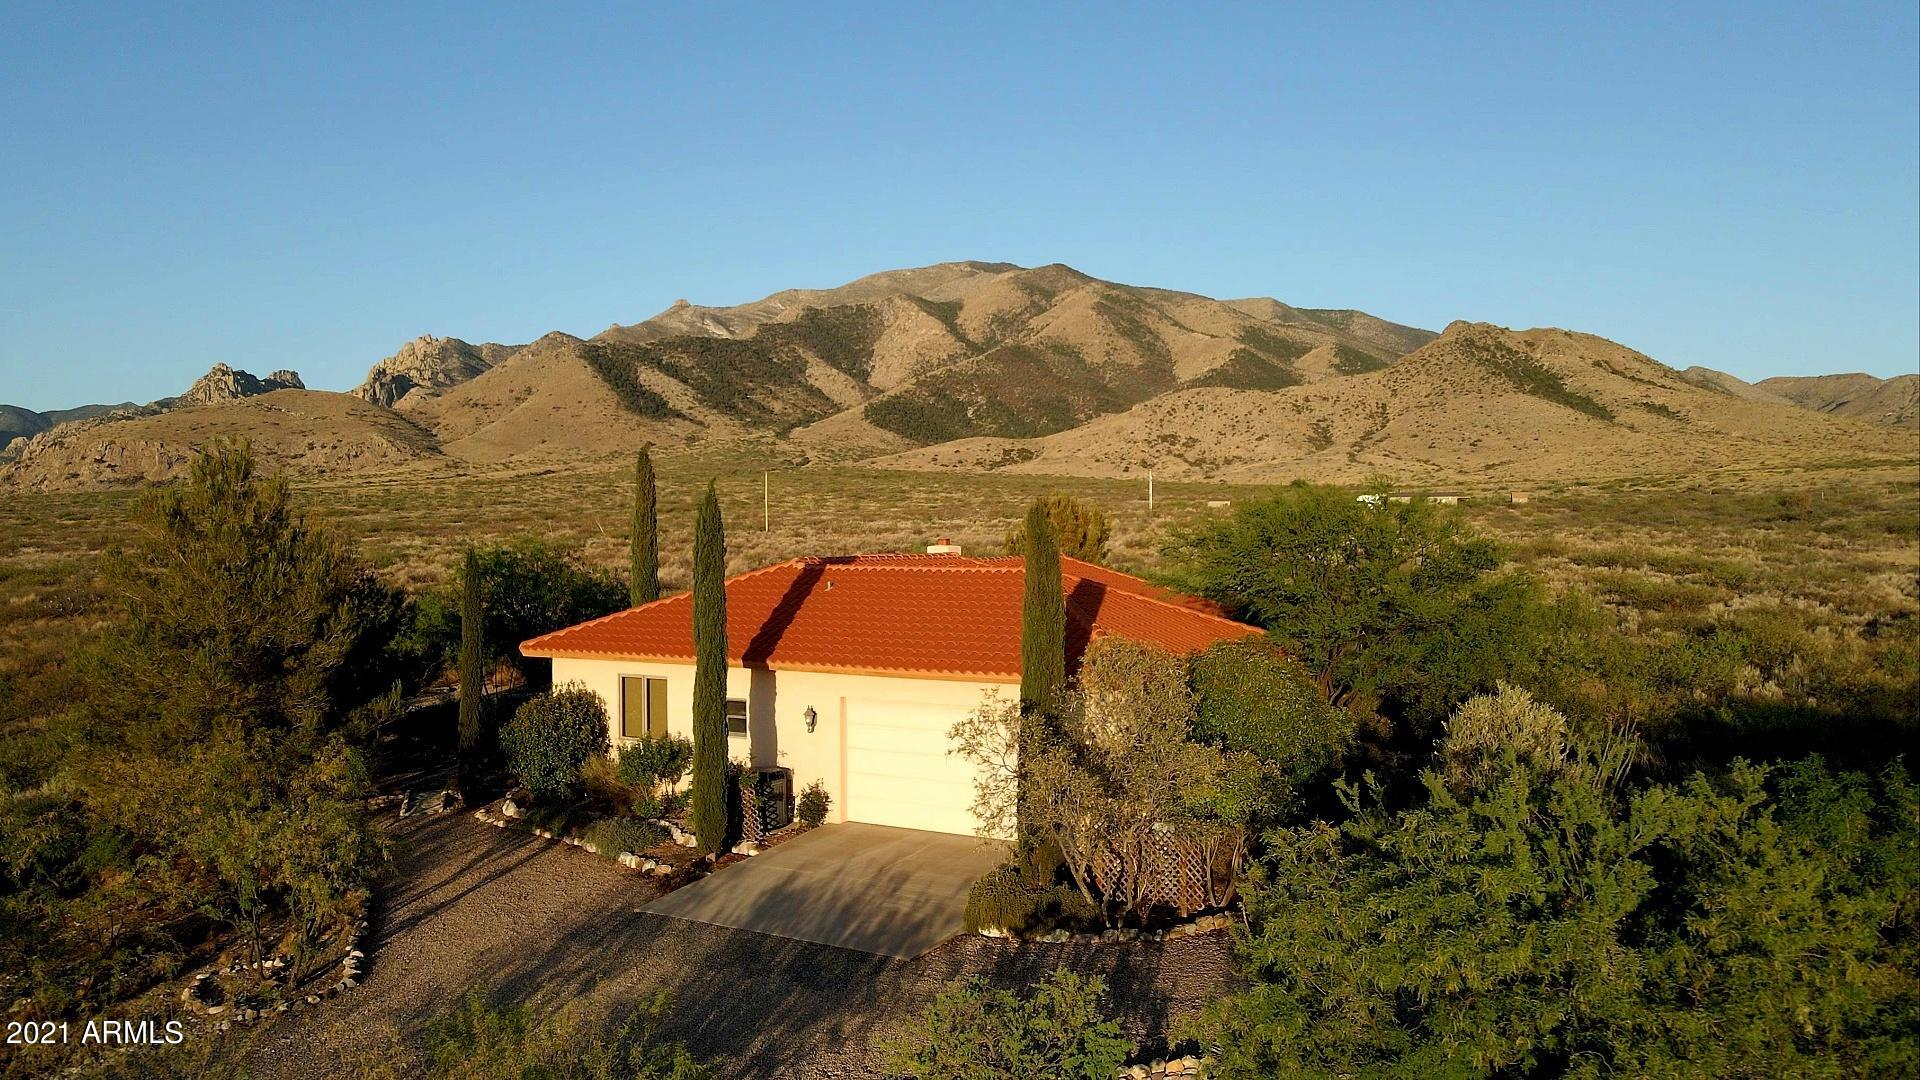 Peaceful custom home surrounded by mountain views and nature.  This tranquil three bedroom home includes a full bathroom in each bedroom, plus a hall bath, extra storage, fireplace, recessed lighting,  AC, entertainment room, solid wood cabinets, covered patio, tile roof, dual pane windows, scored concrete floors, 2 stall barn, 2 car garage, garden area and so much more all on 10 acres! Secluded without being isolated this home is both a retreat and perfect for entertaining. The unique custom-built home with two stall horse barn sits on a peaceful ten acres at the foot of the Dragoon Mountains. Watch unobstructed sunrises and marvel at the clear night sky. Enjoy 360 views, an abundance of wildlife, or a 10 minute walk into the National Forest for a great hike or leisurely horseback ride.